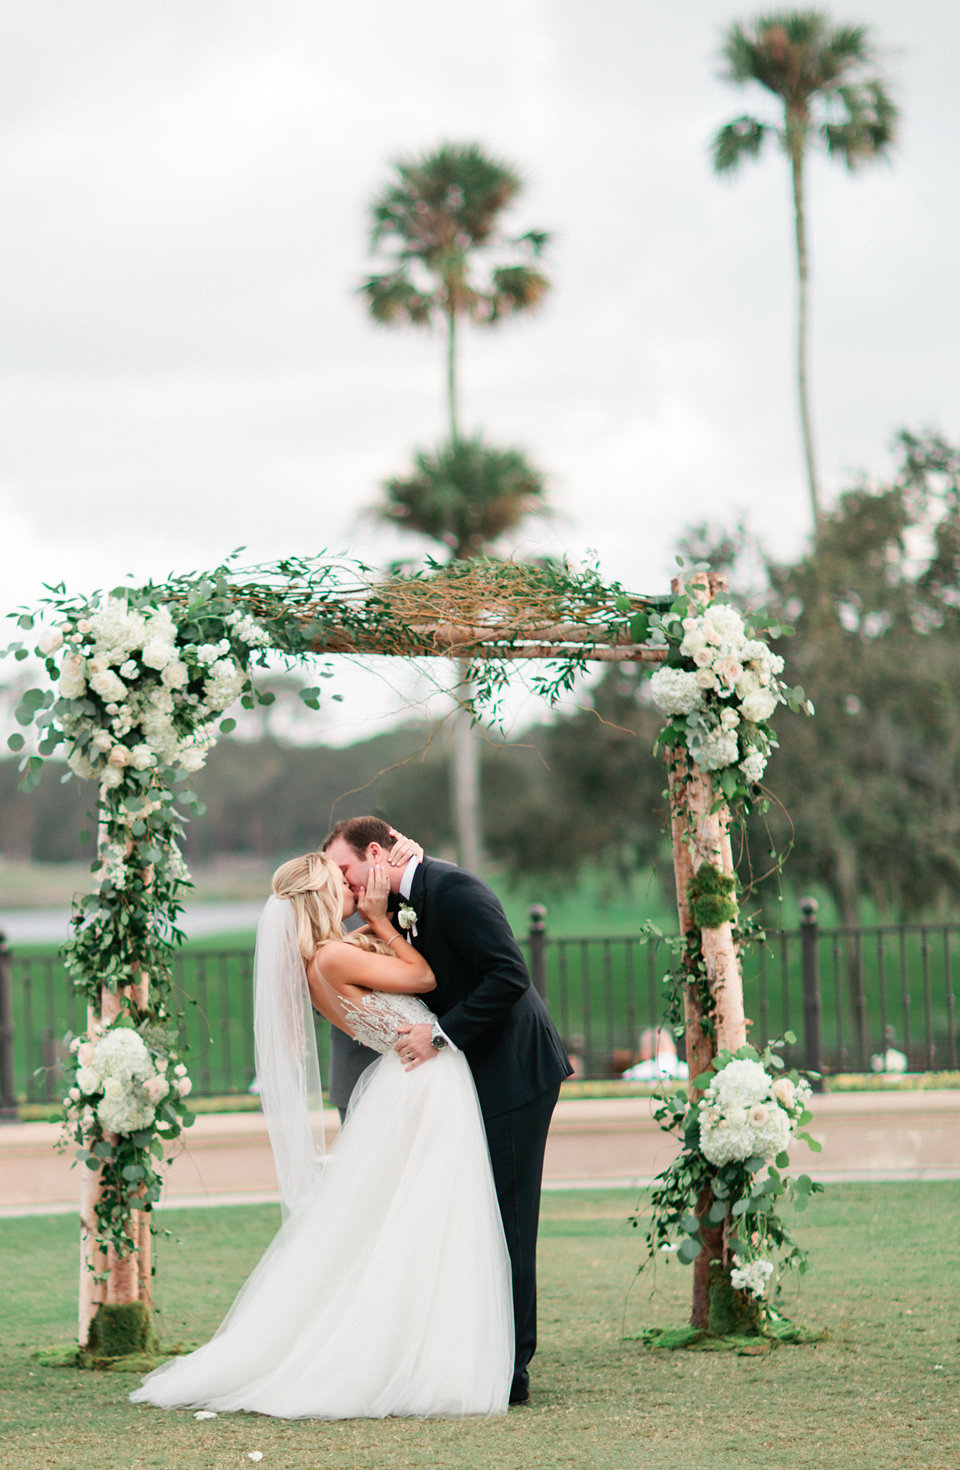 Blush and ivory blooms with greenry on wedding arch TPC Sawgrass Jacksonville  Blush Wedding at TPC Sawgrass Wedding Ponte Vedra Beach  Jacksonville Wedding Planner Blue Ribbon Weddings  Jacksonville Wedding Photographer Debra Eby Photography  Wedding Ceremony & Reception at TPC Sawgrass Jacksonville